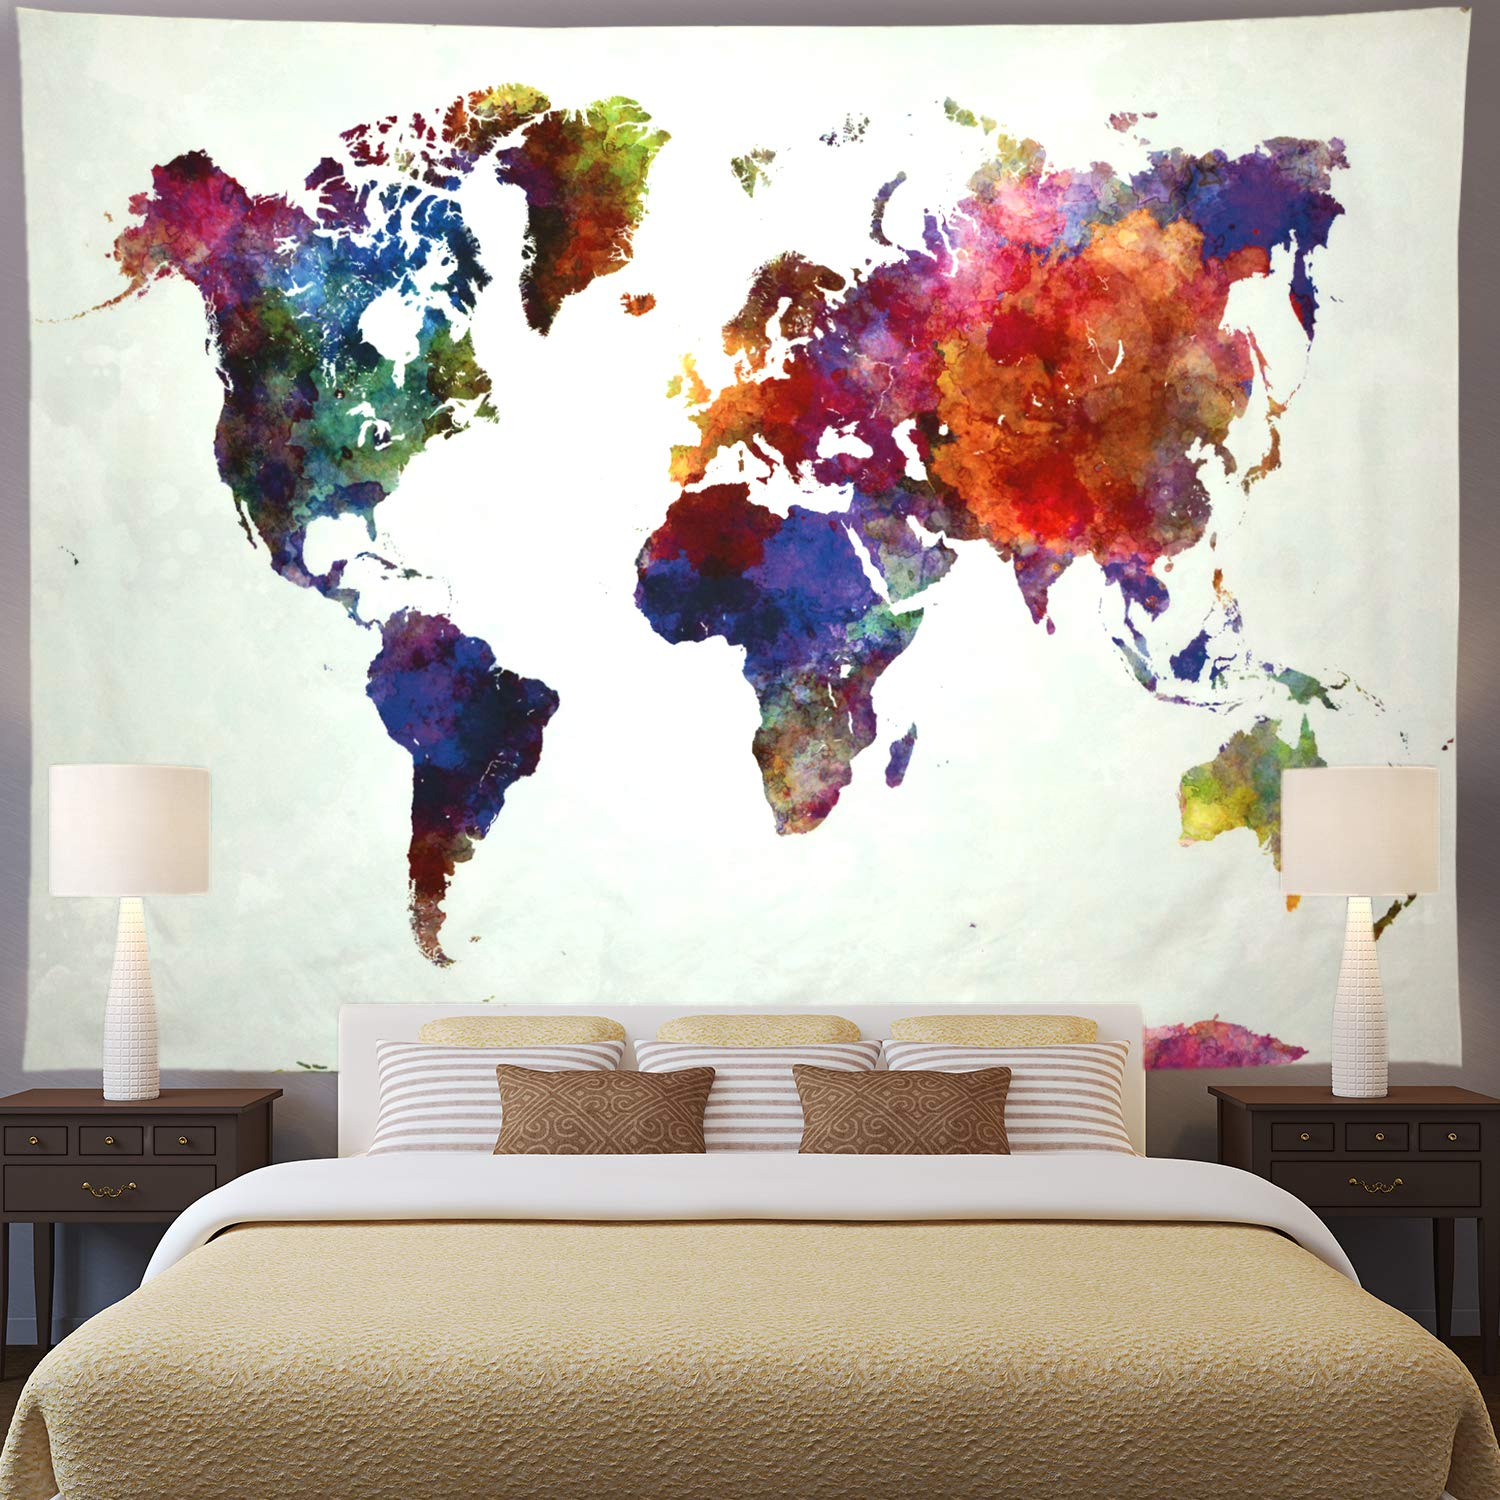 """Ameyahud World Map Tapestry Watercolor World Tapestry Abstract Map Tapestry World Tapestry Wall Hanging for Bedroom (XL/70.8""""×92.5"""", Colorful Map)"""